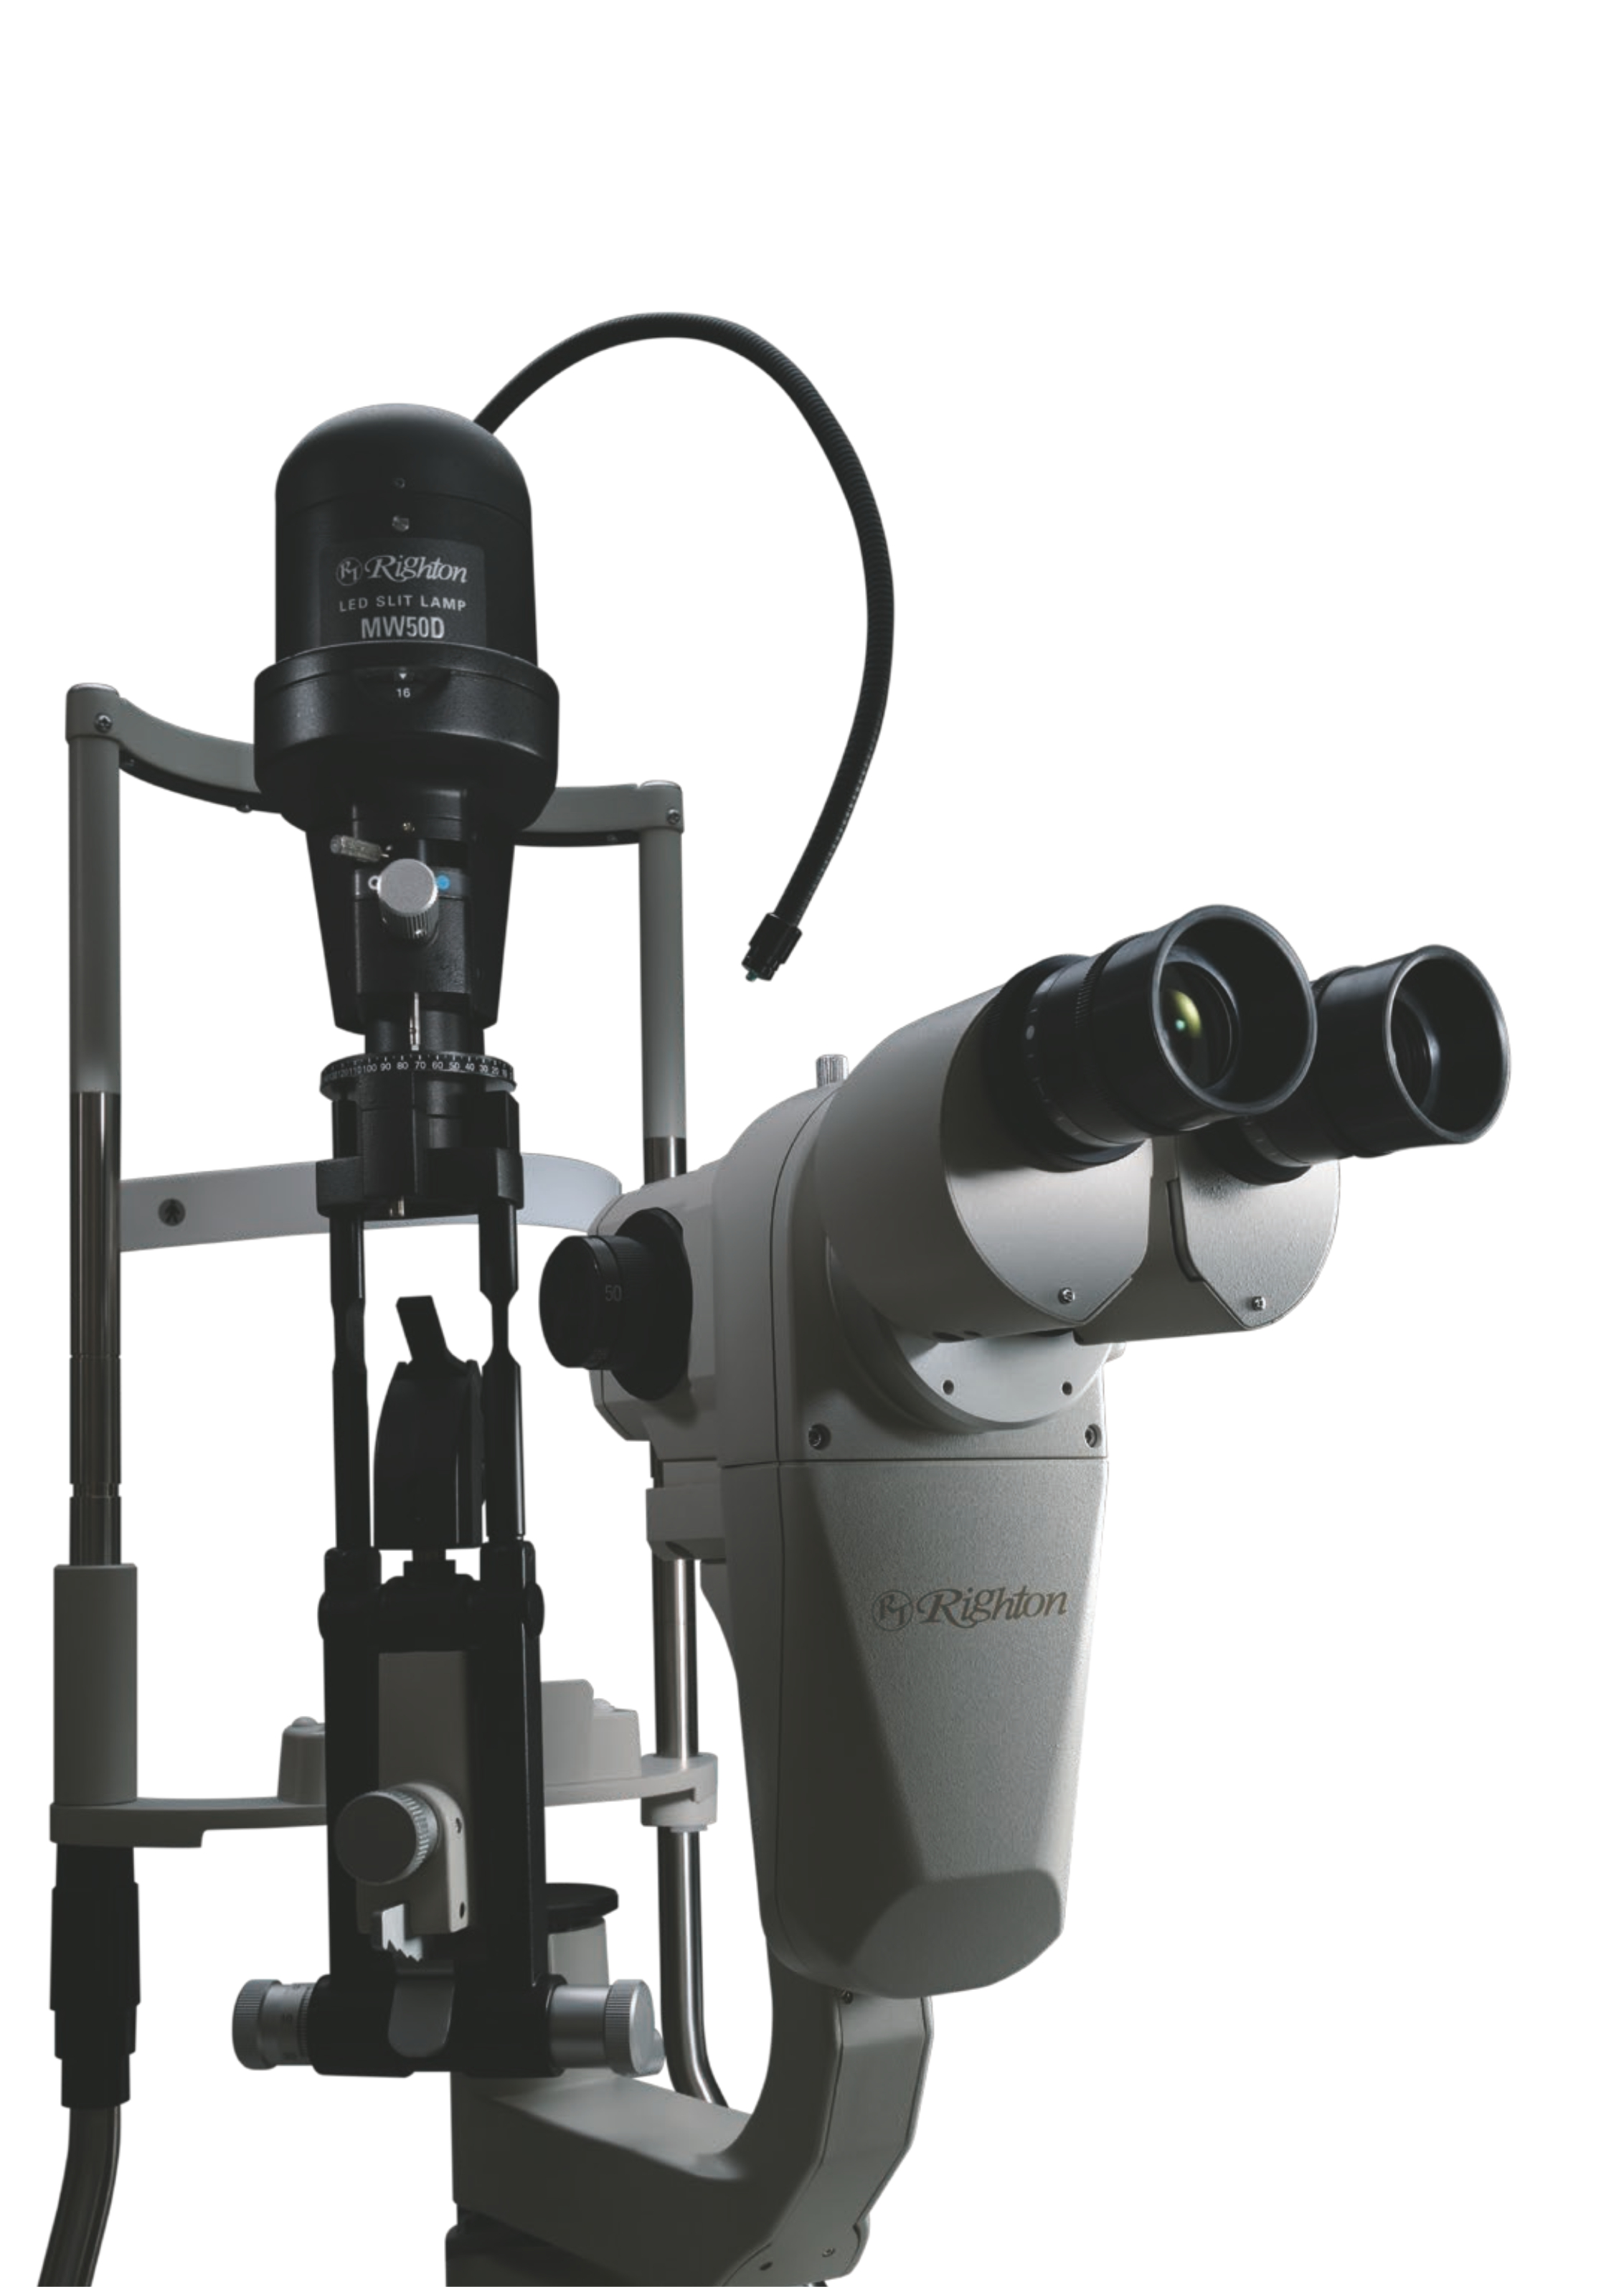 Righton MW50D Slit Lamp Anterior Photography Eye Care Technology